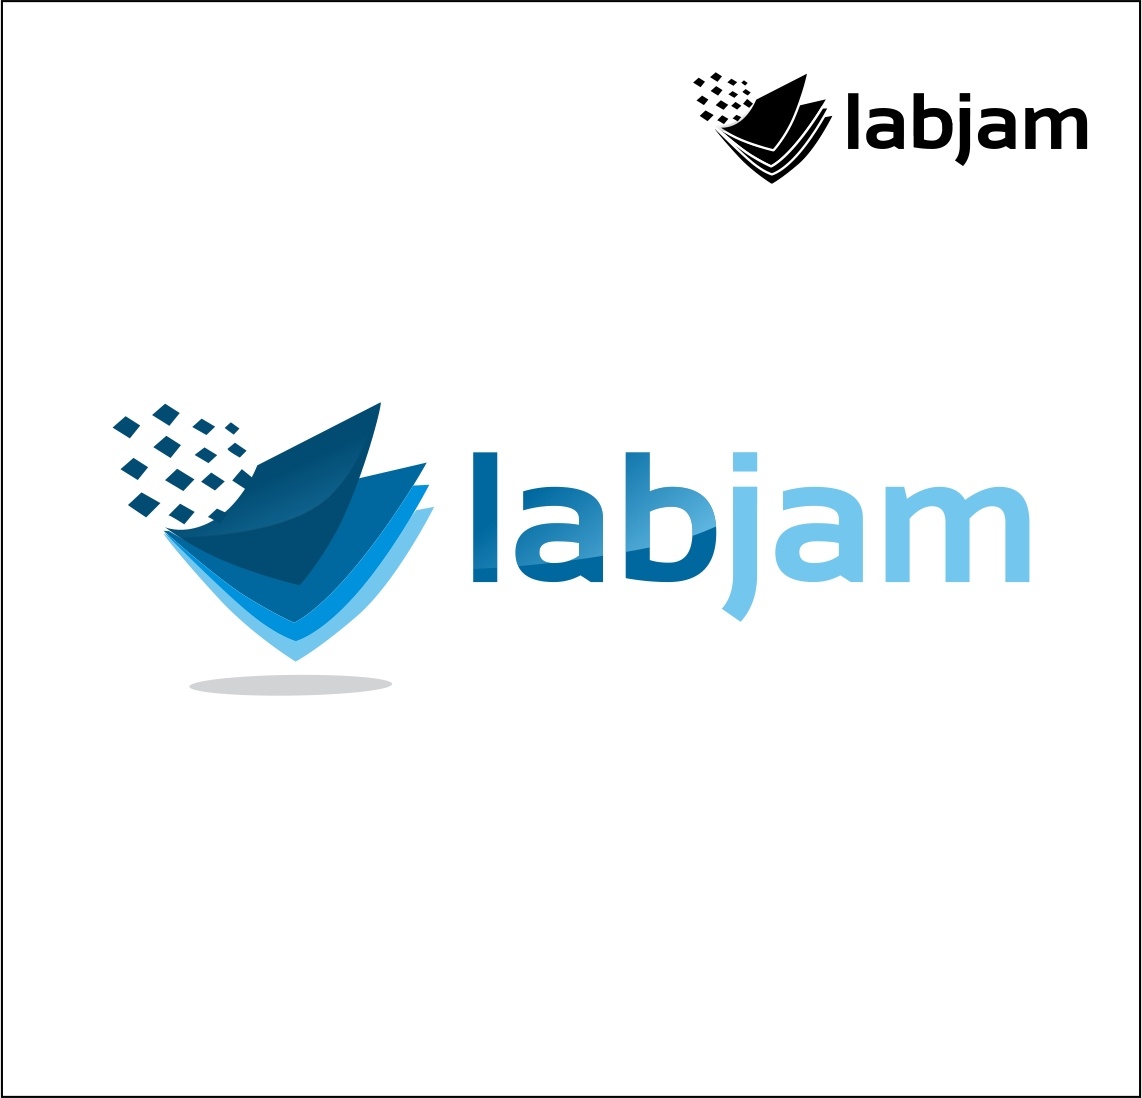 Logo Design by arkvisdesigns - Entry No. 92 in the Logo Design Contest Labjam.